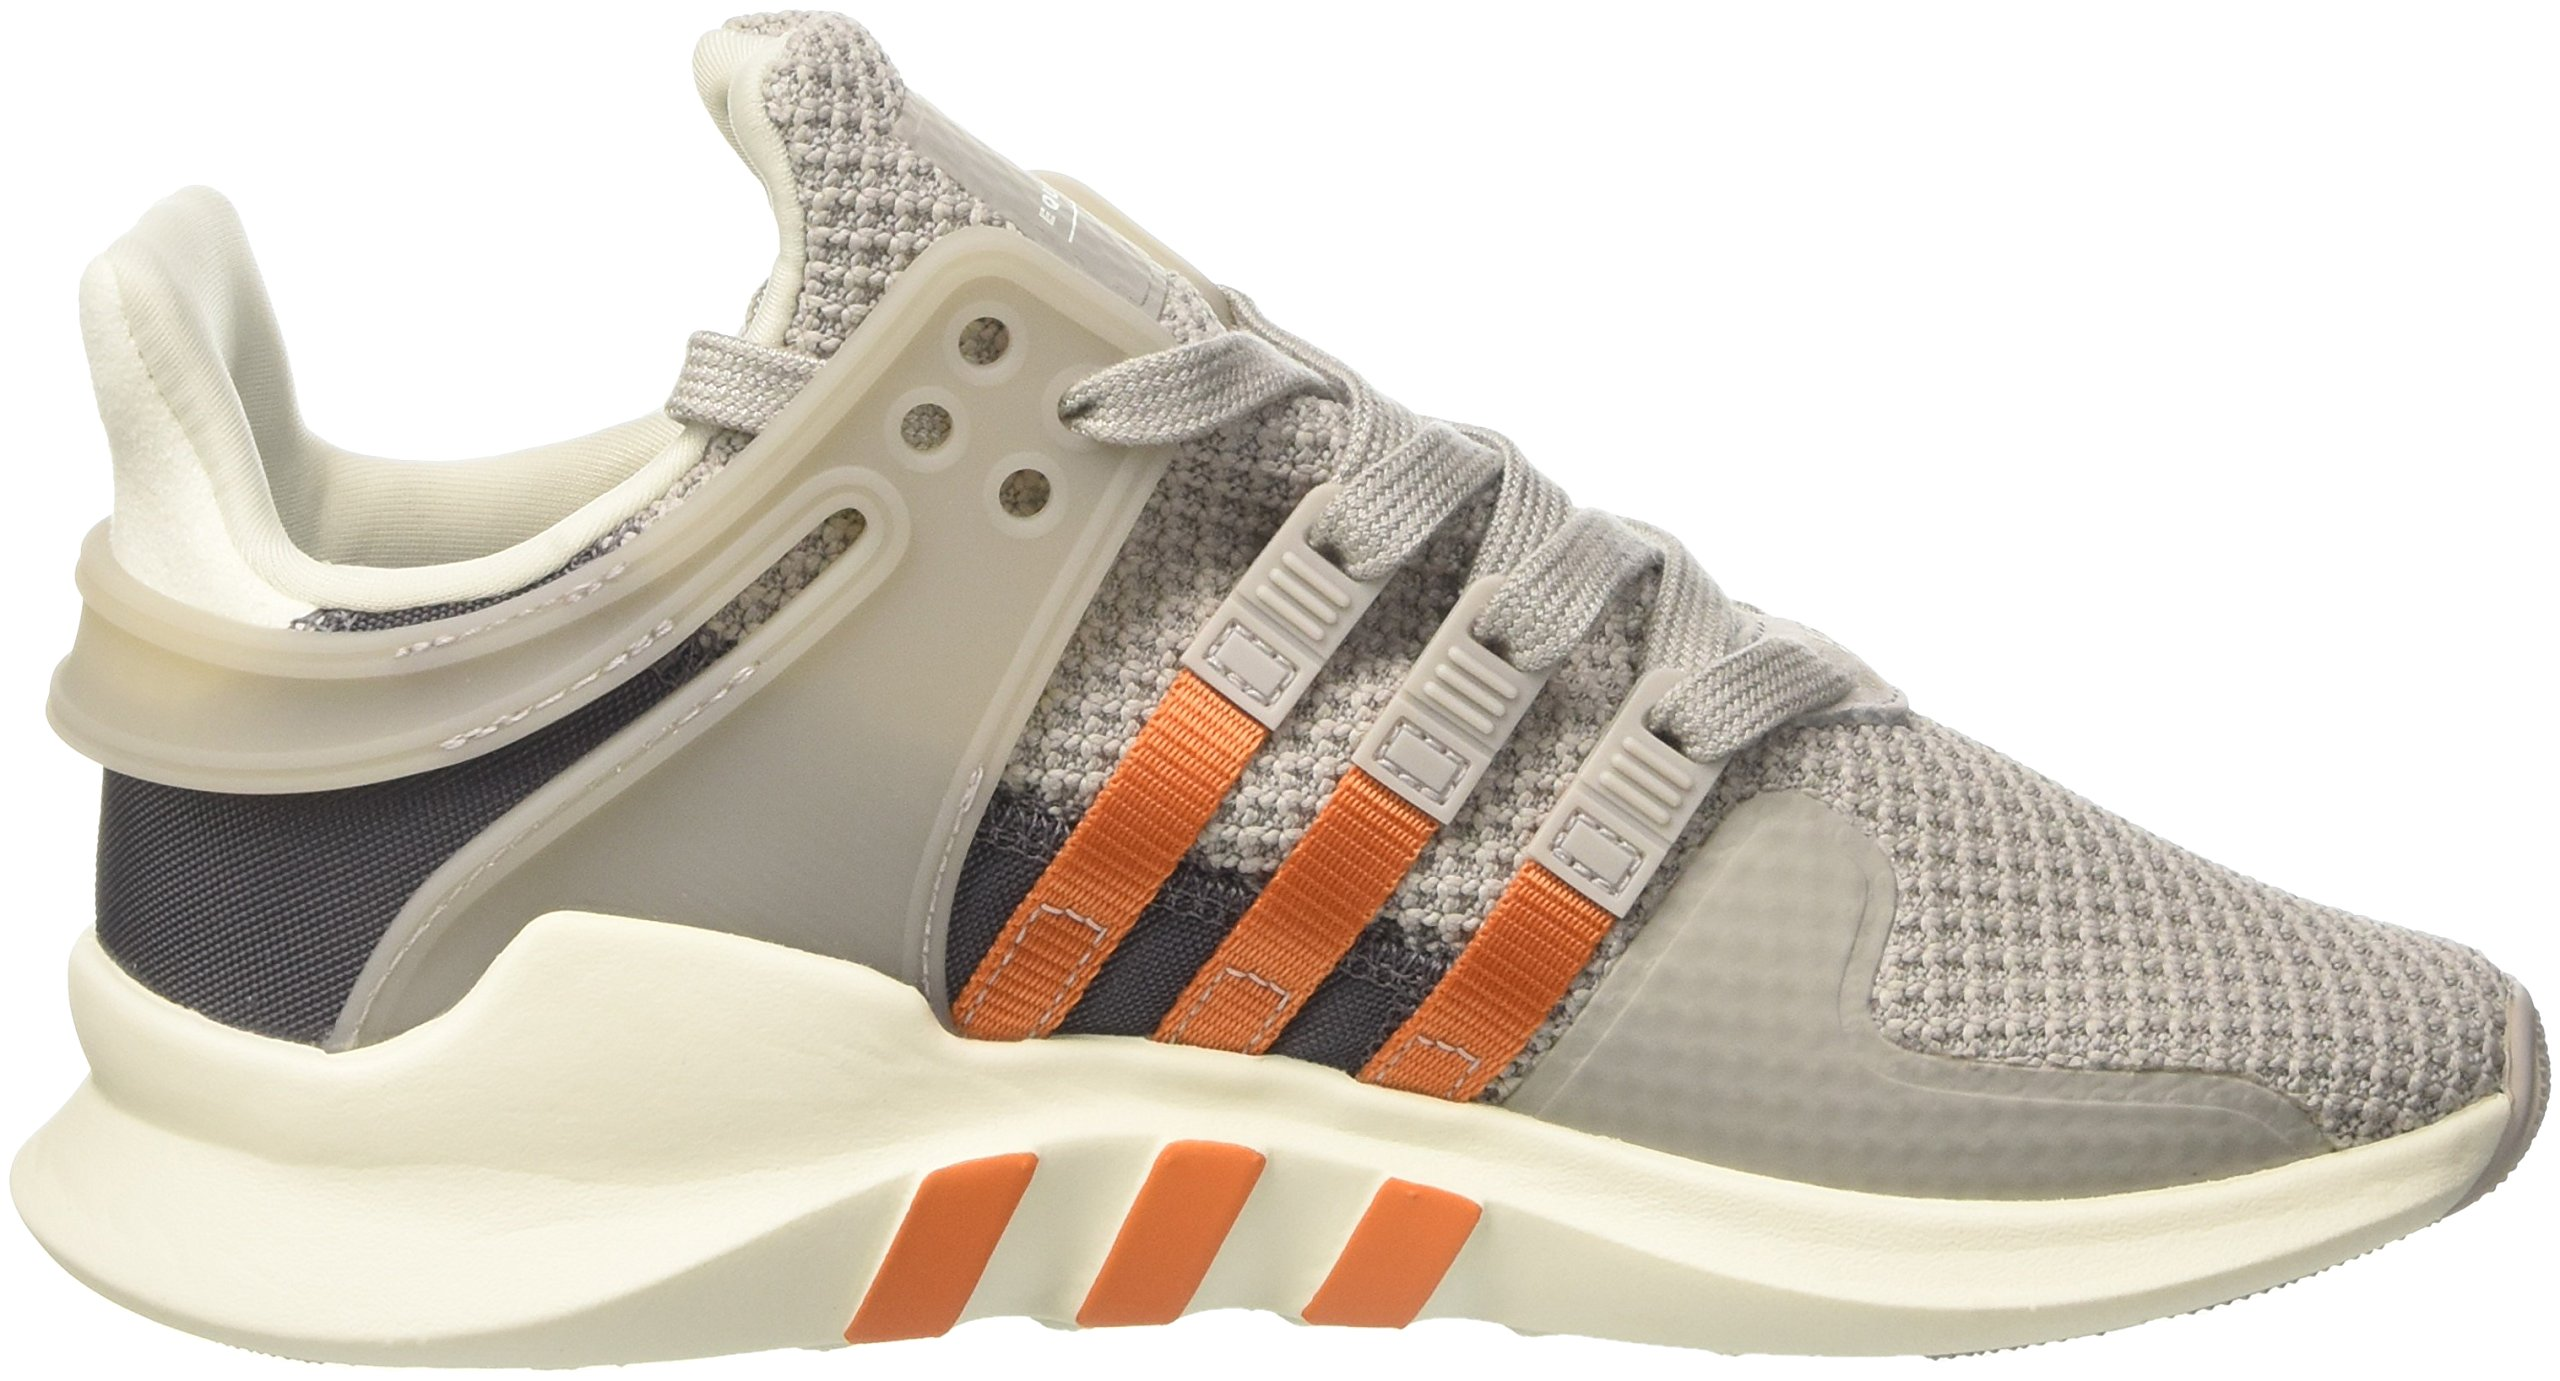 81Fnt5mVBTL - adidas Women's Equipment Support a Low-Top Sneakers, Grey